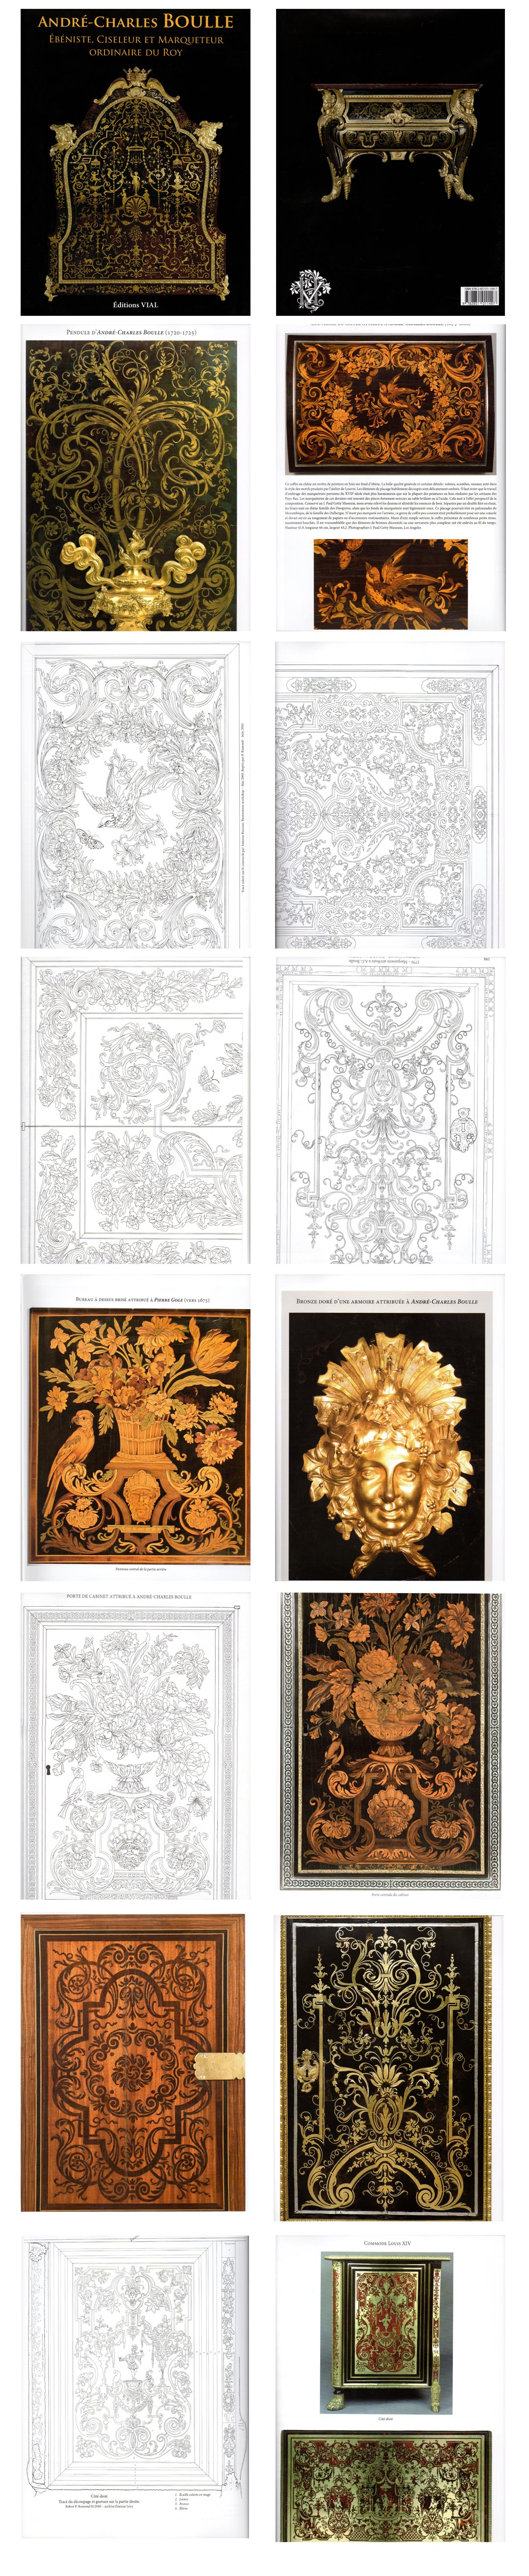 Andre-Charles Boulle - Book